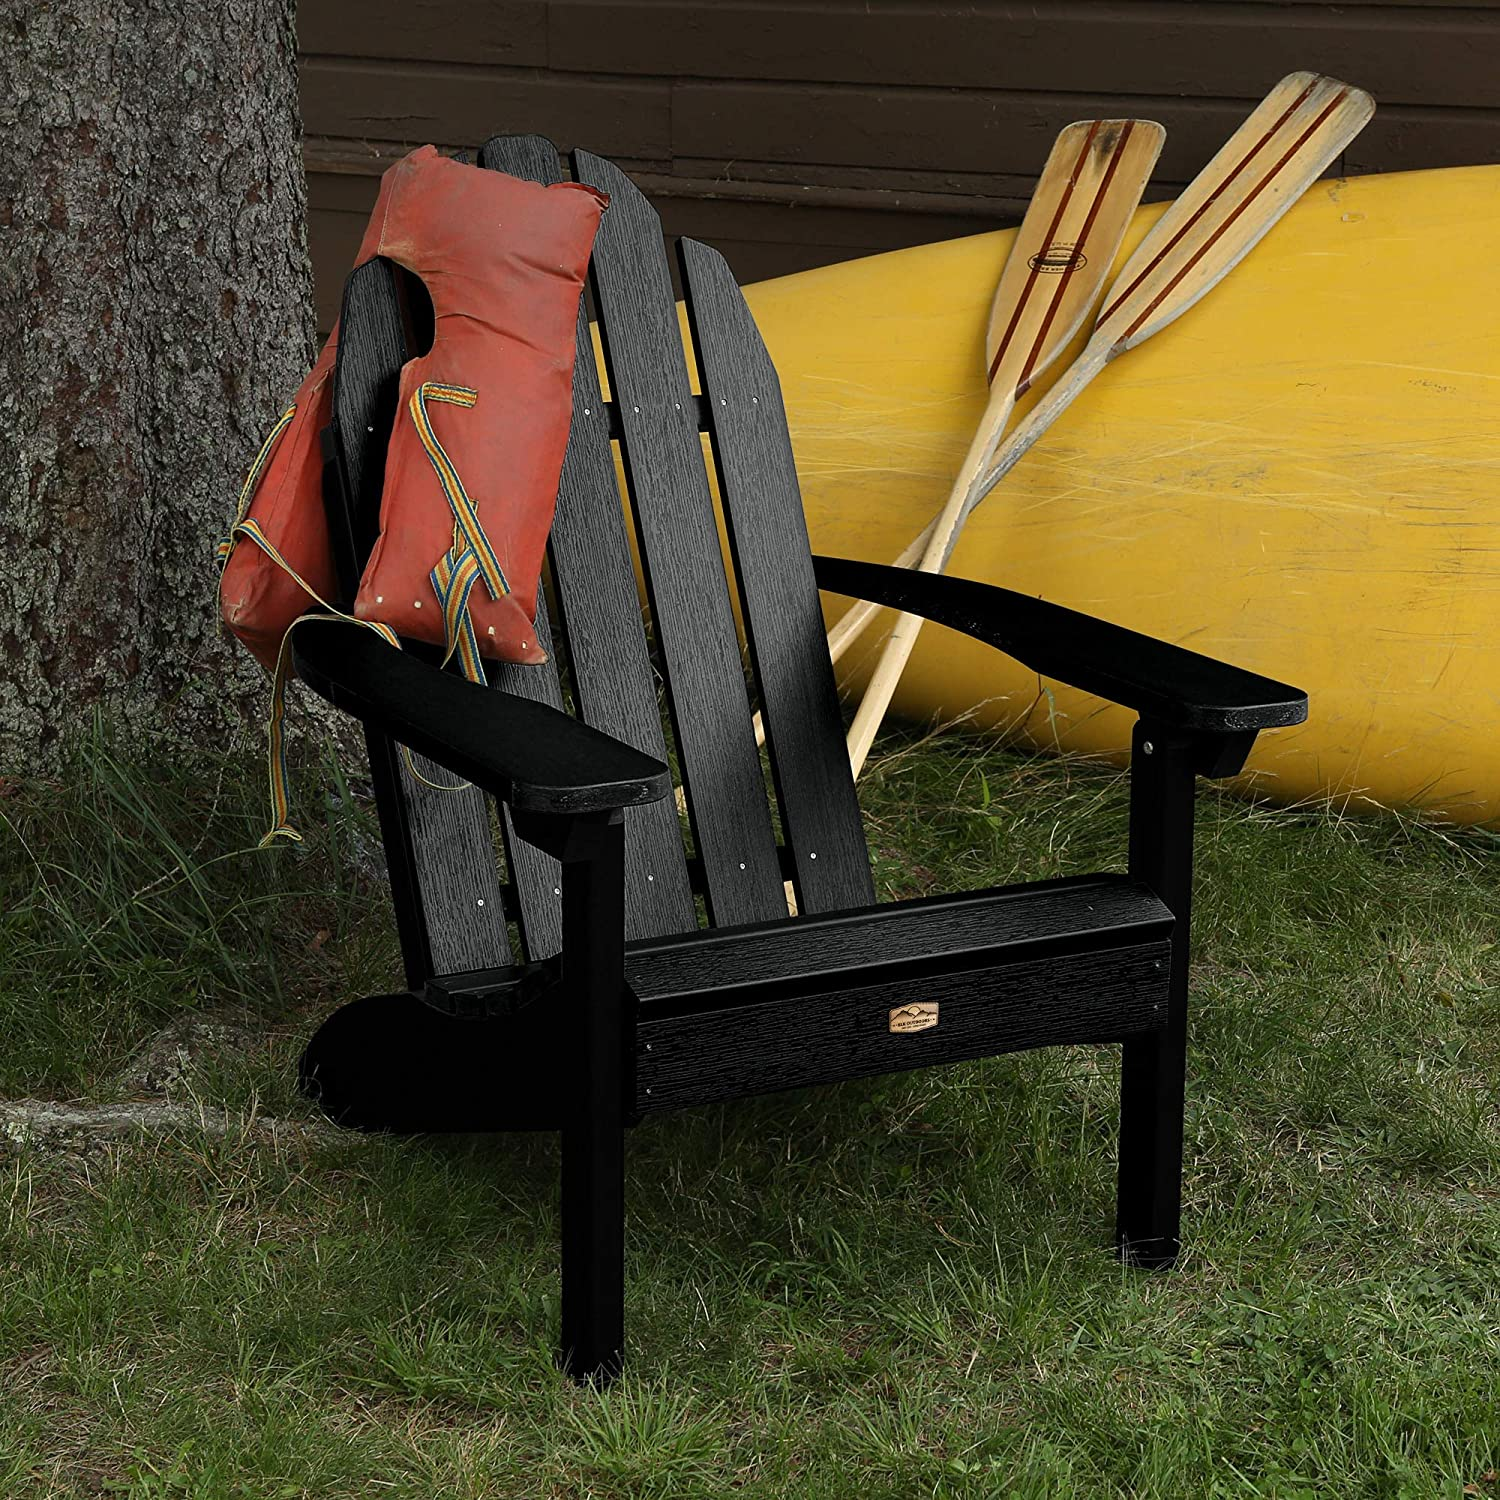 Elk Outdoors EO-CLAS1-ABY Essential Adirondack Chair, Abyss